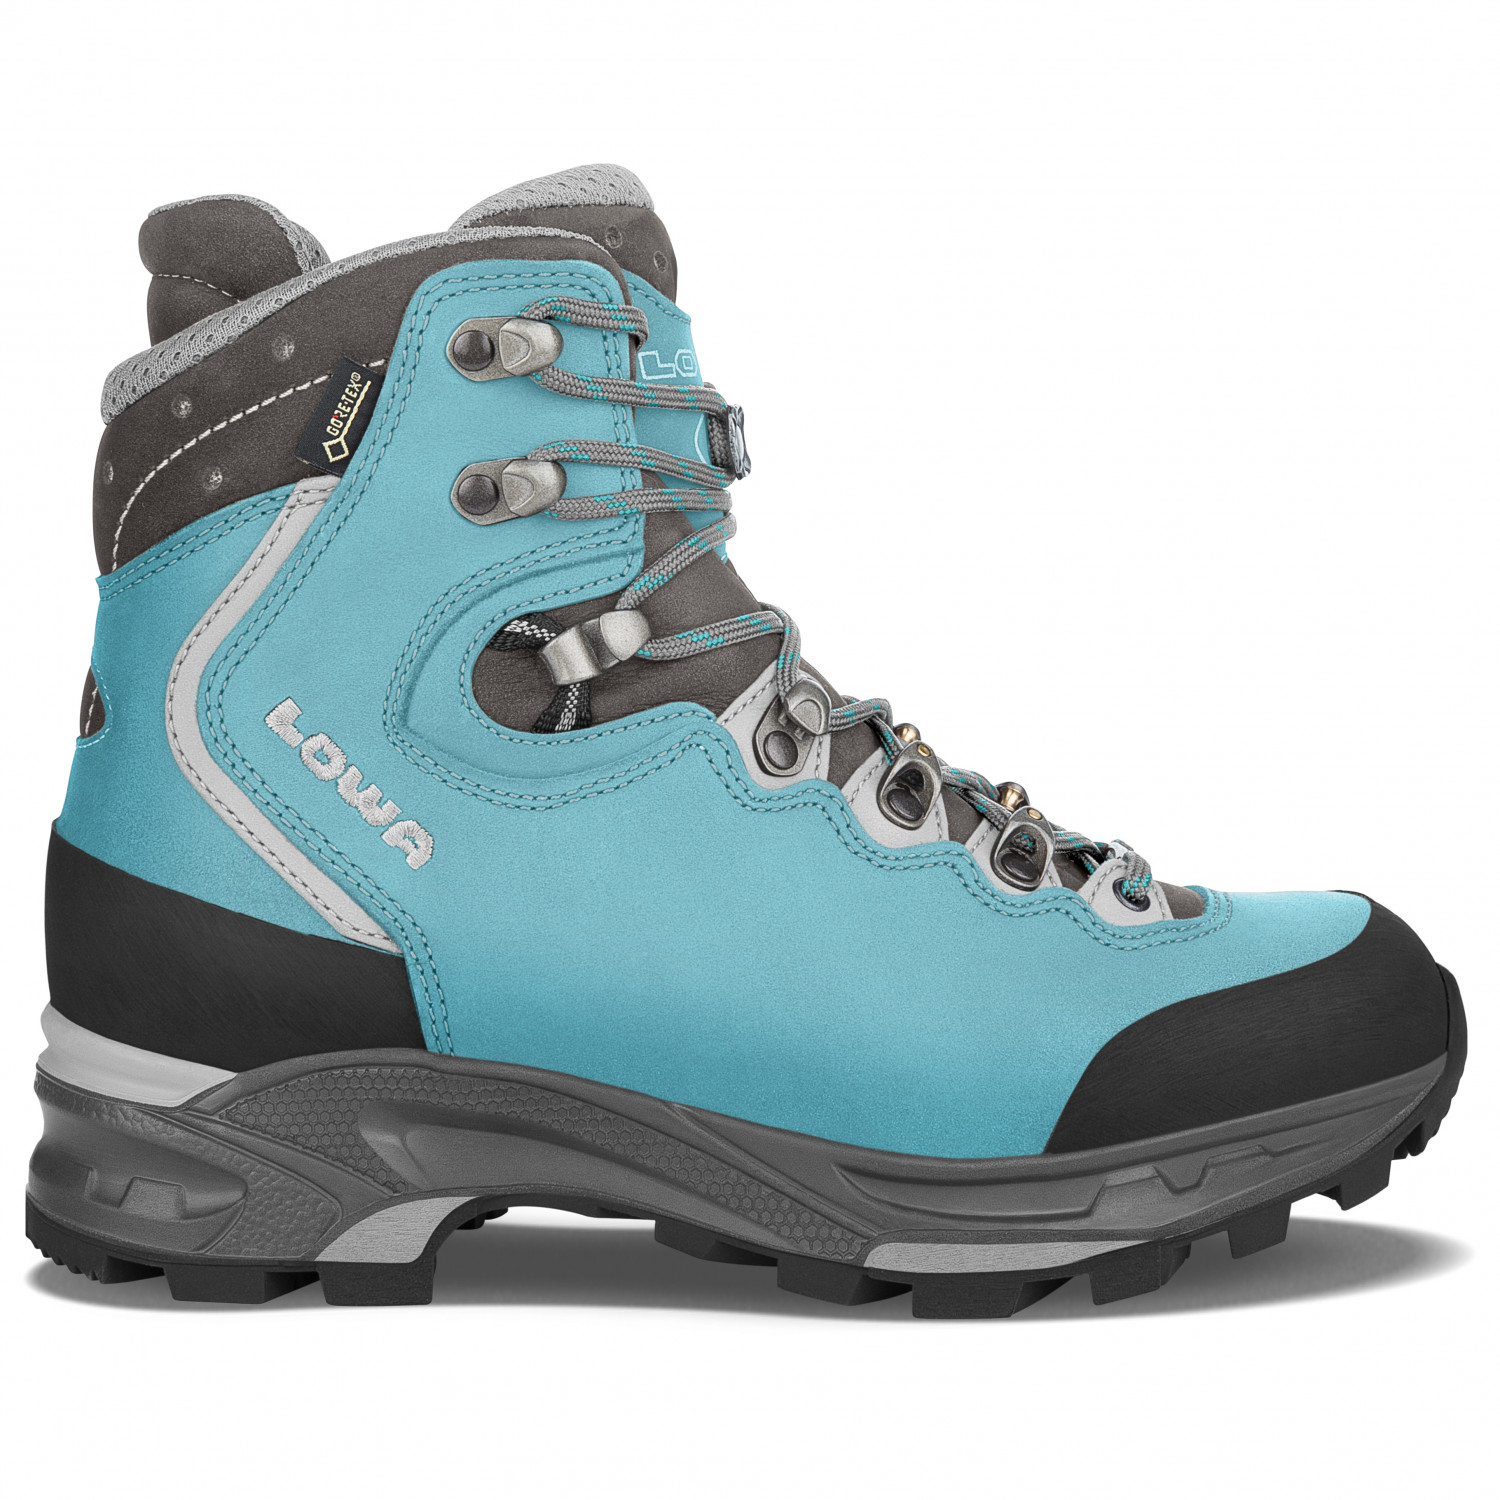 91c69bfd1cb Lowa Mauria GTX - Walking Boots Women's | Free UK Delivery ...